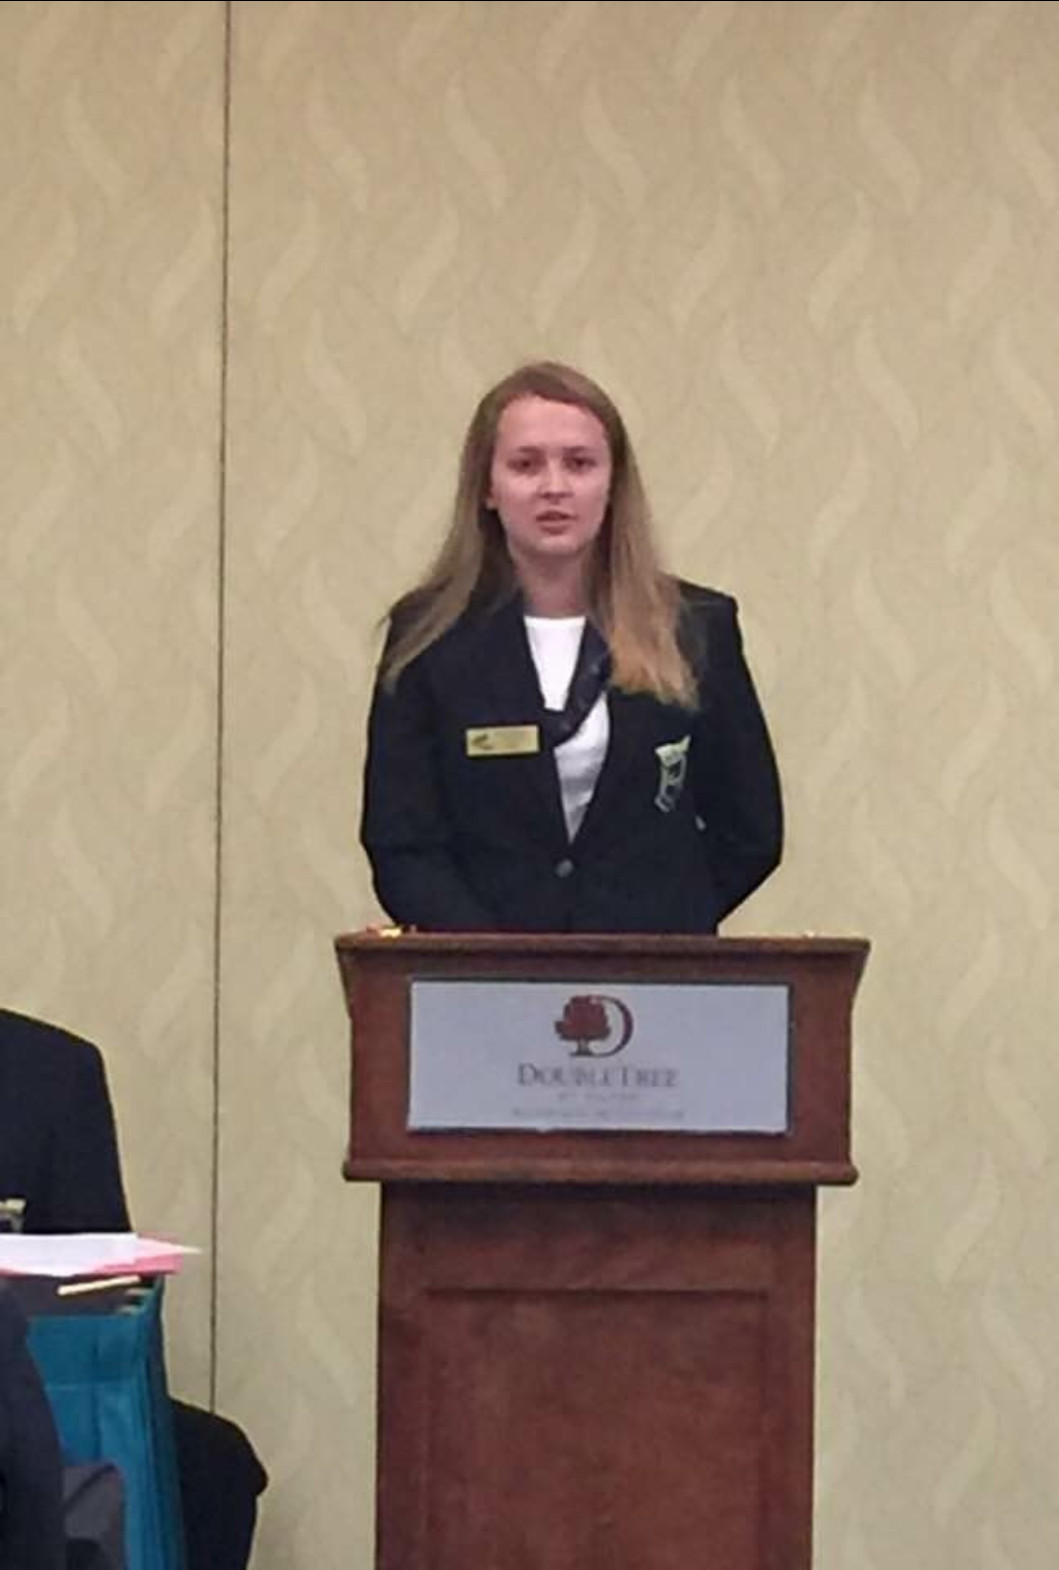 Maggie McComas presents at State FBLA Meeting